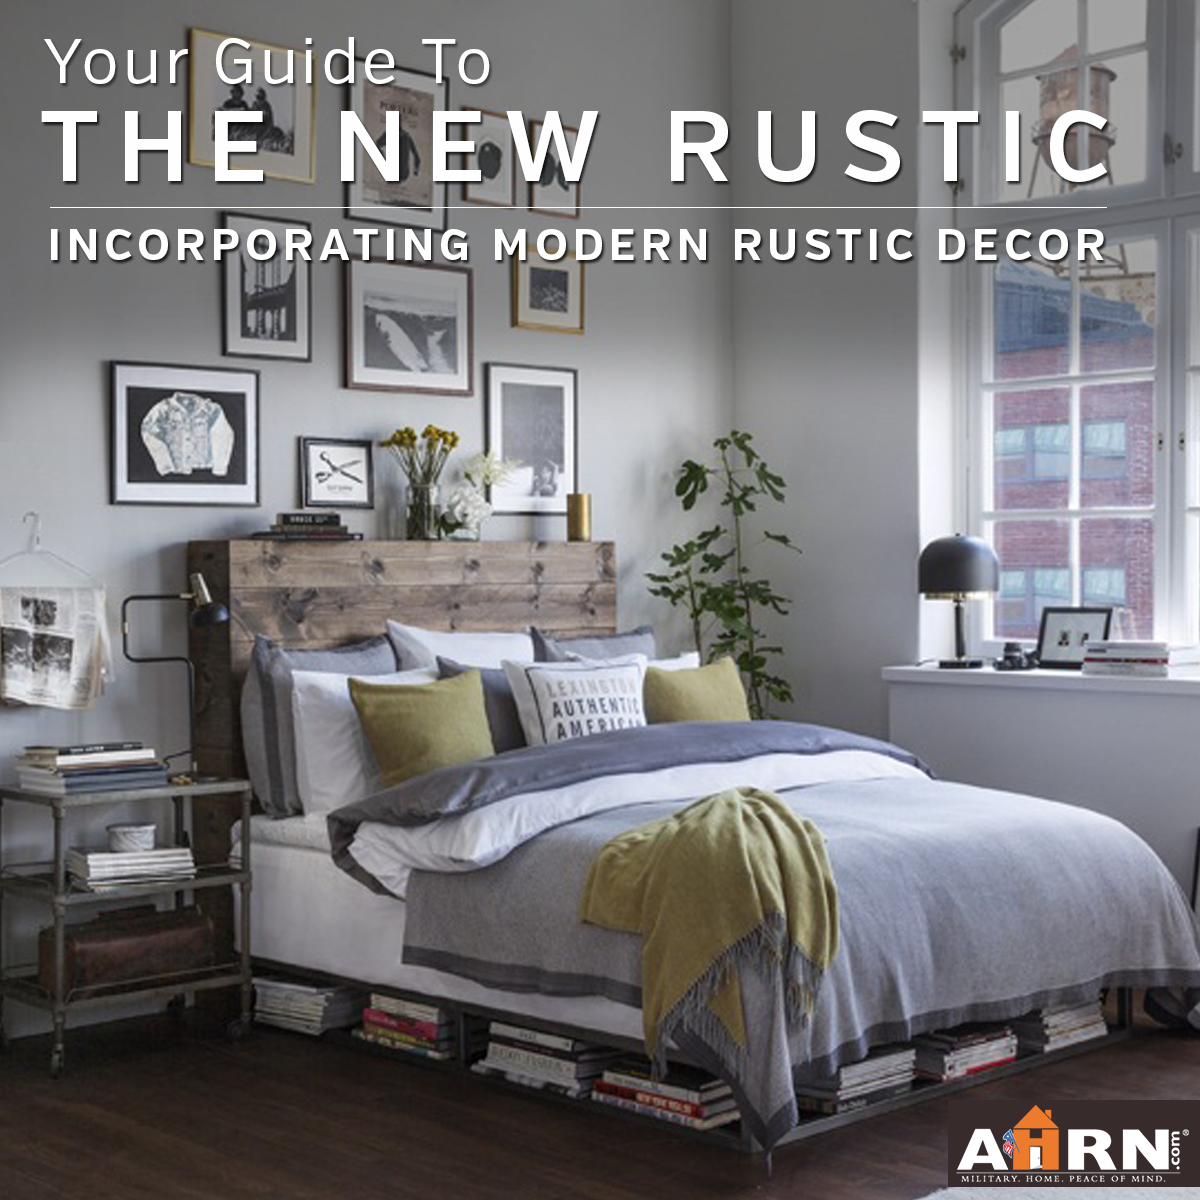 Your Guide To The New Rustic Decor